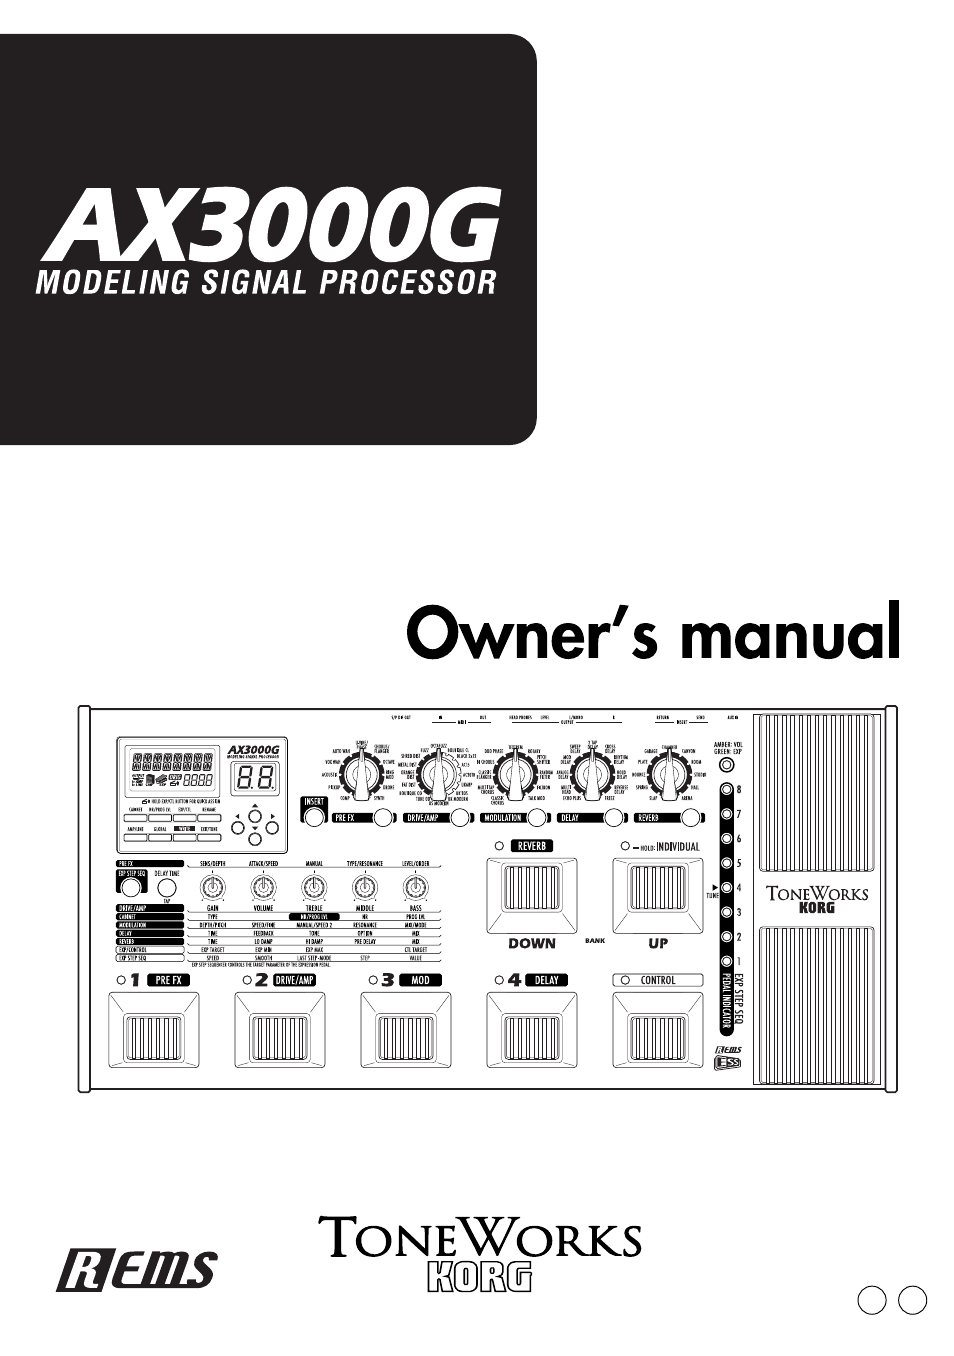 Collections korg toneworks ax100g manual | downloads ebook launch.